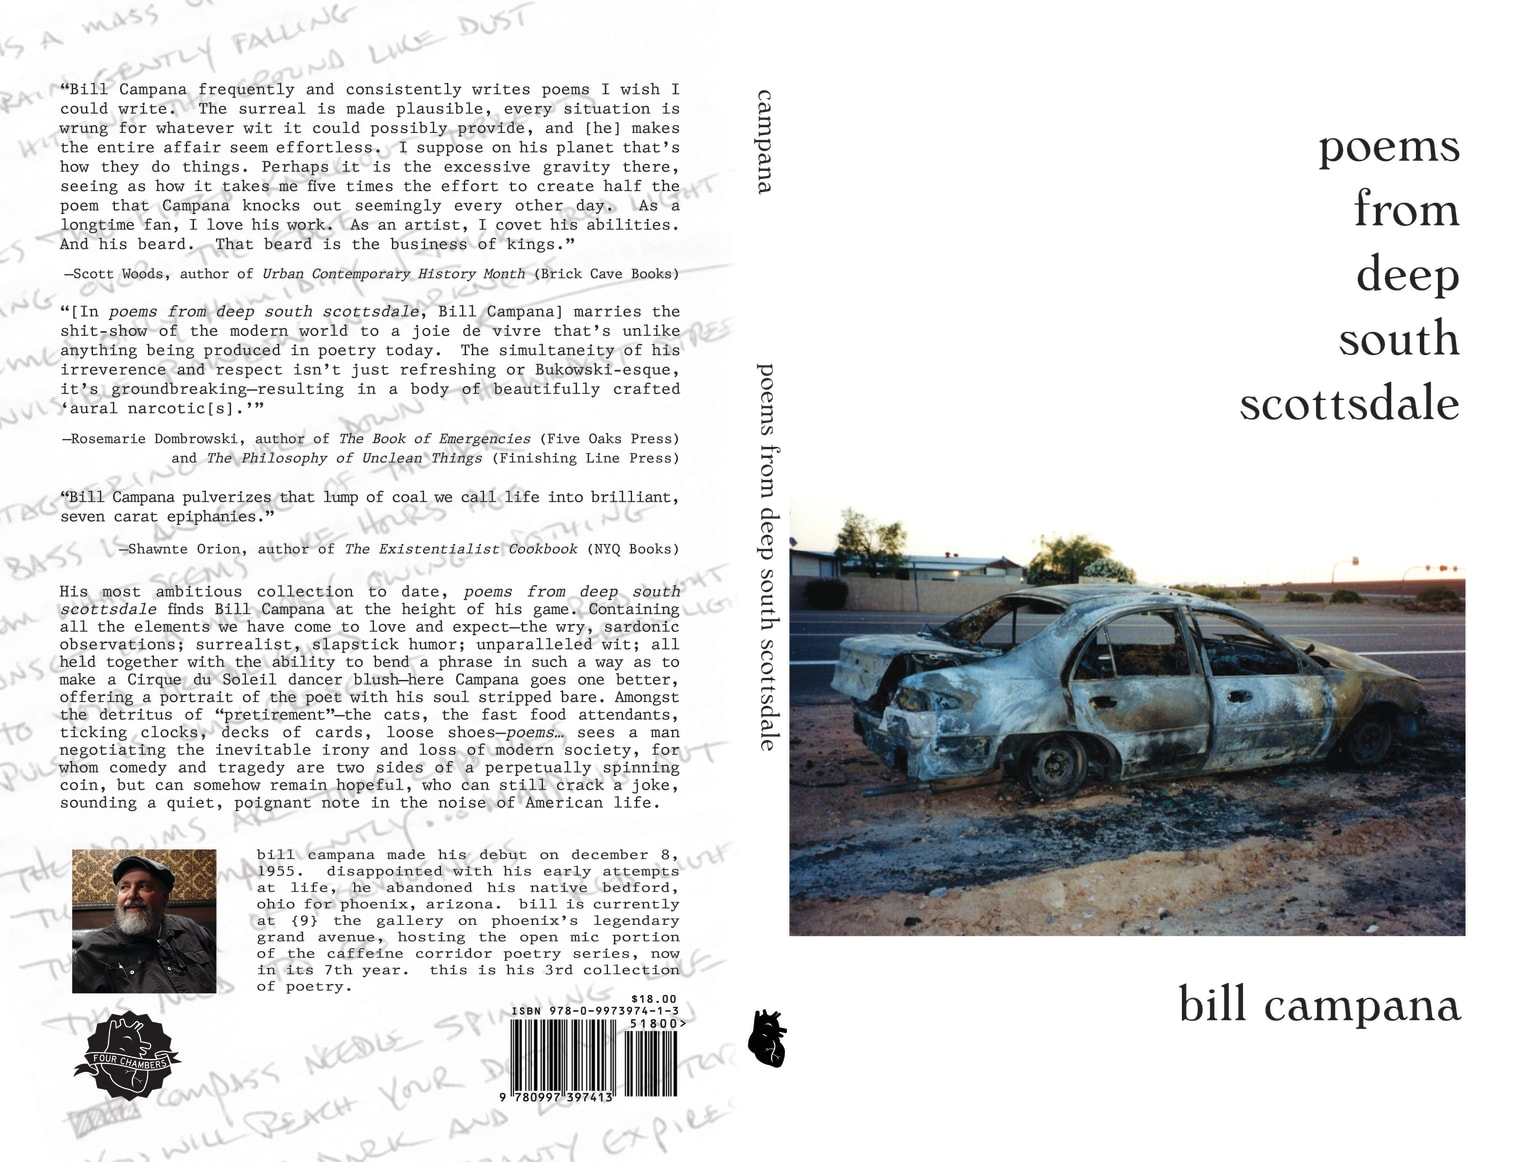 Publication - Poems from Deep South Scottsdale